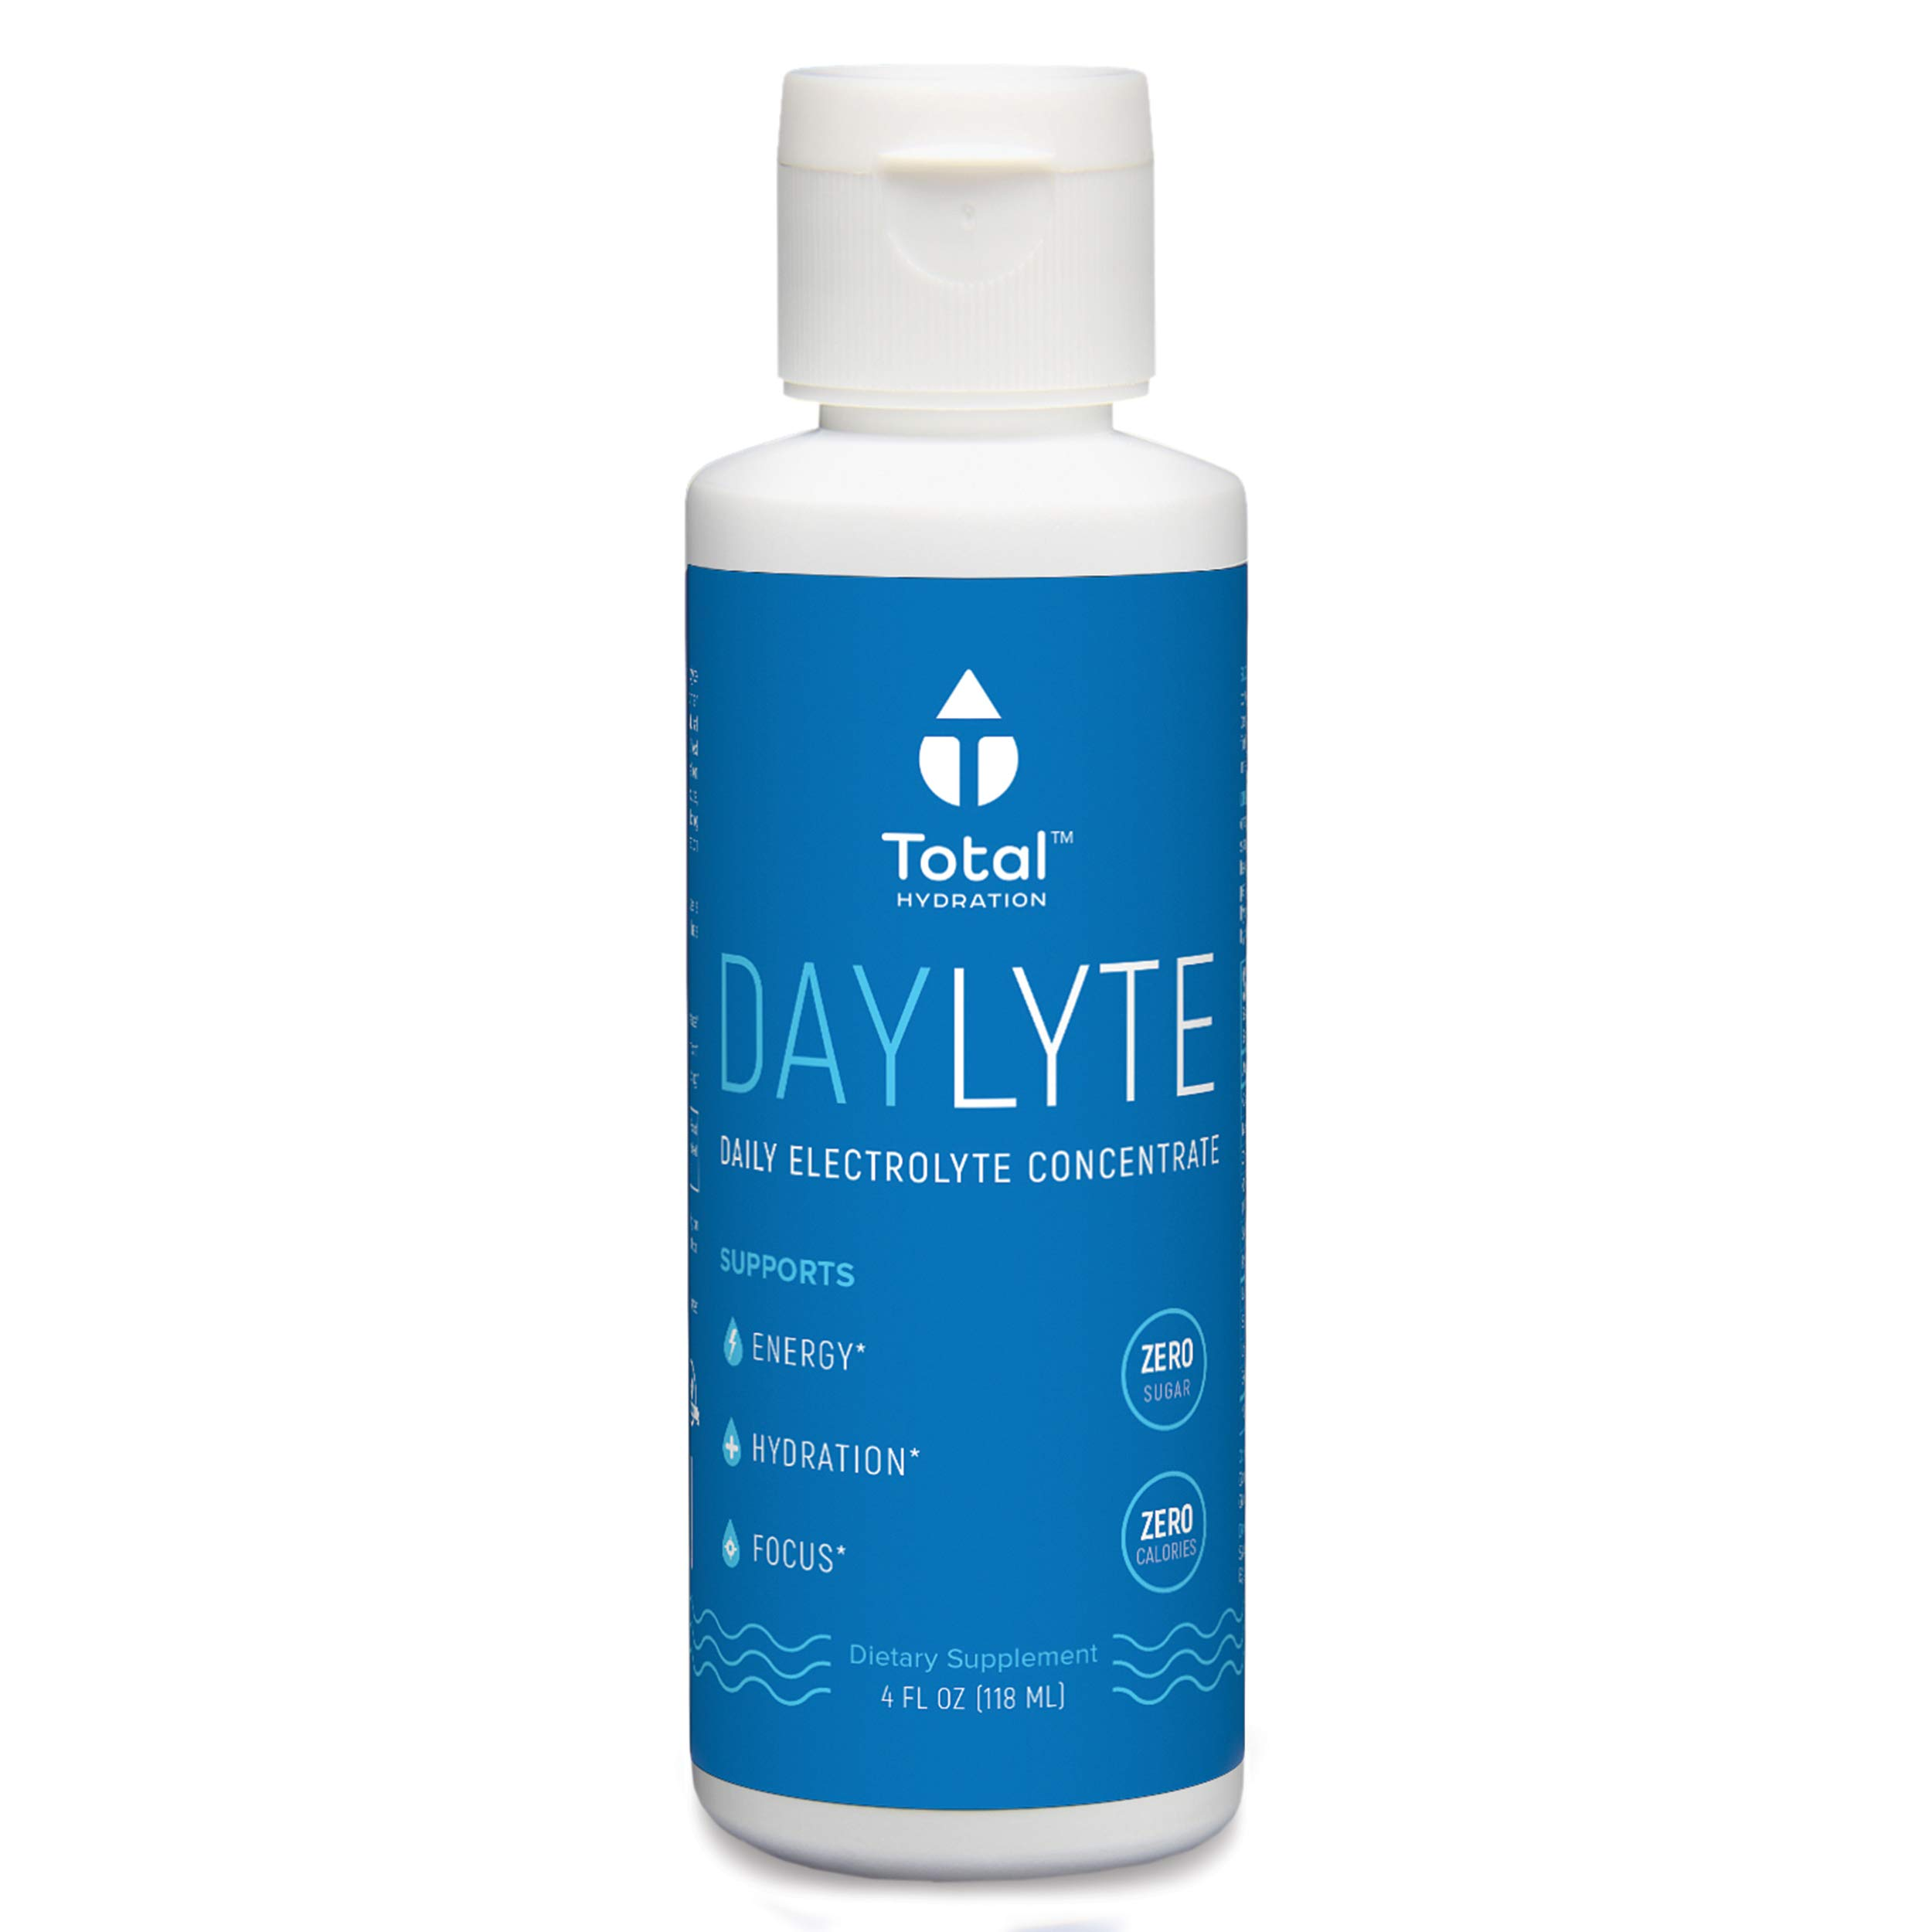 Daylyte Electrolytes Supplement, Electrolyte Drops, Liquid Electrolytes, Magnesium Potassium Supplement, Increase Energy, Mental Focus, Reduce Leg Cramps and Hangover Cure, Trace Minerals, 39 Servings